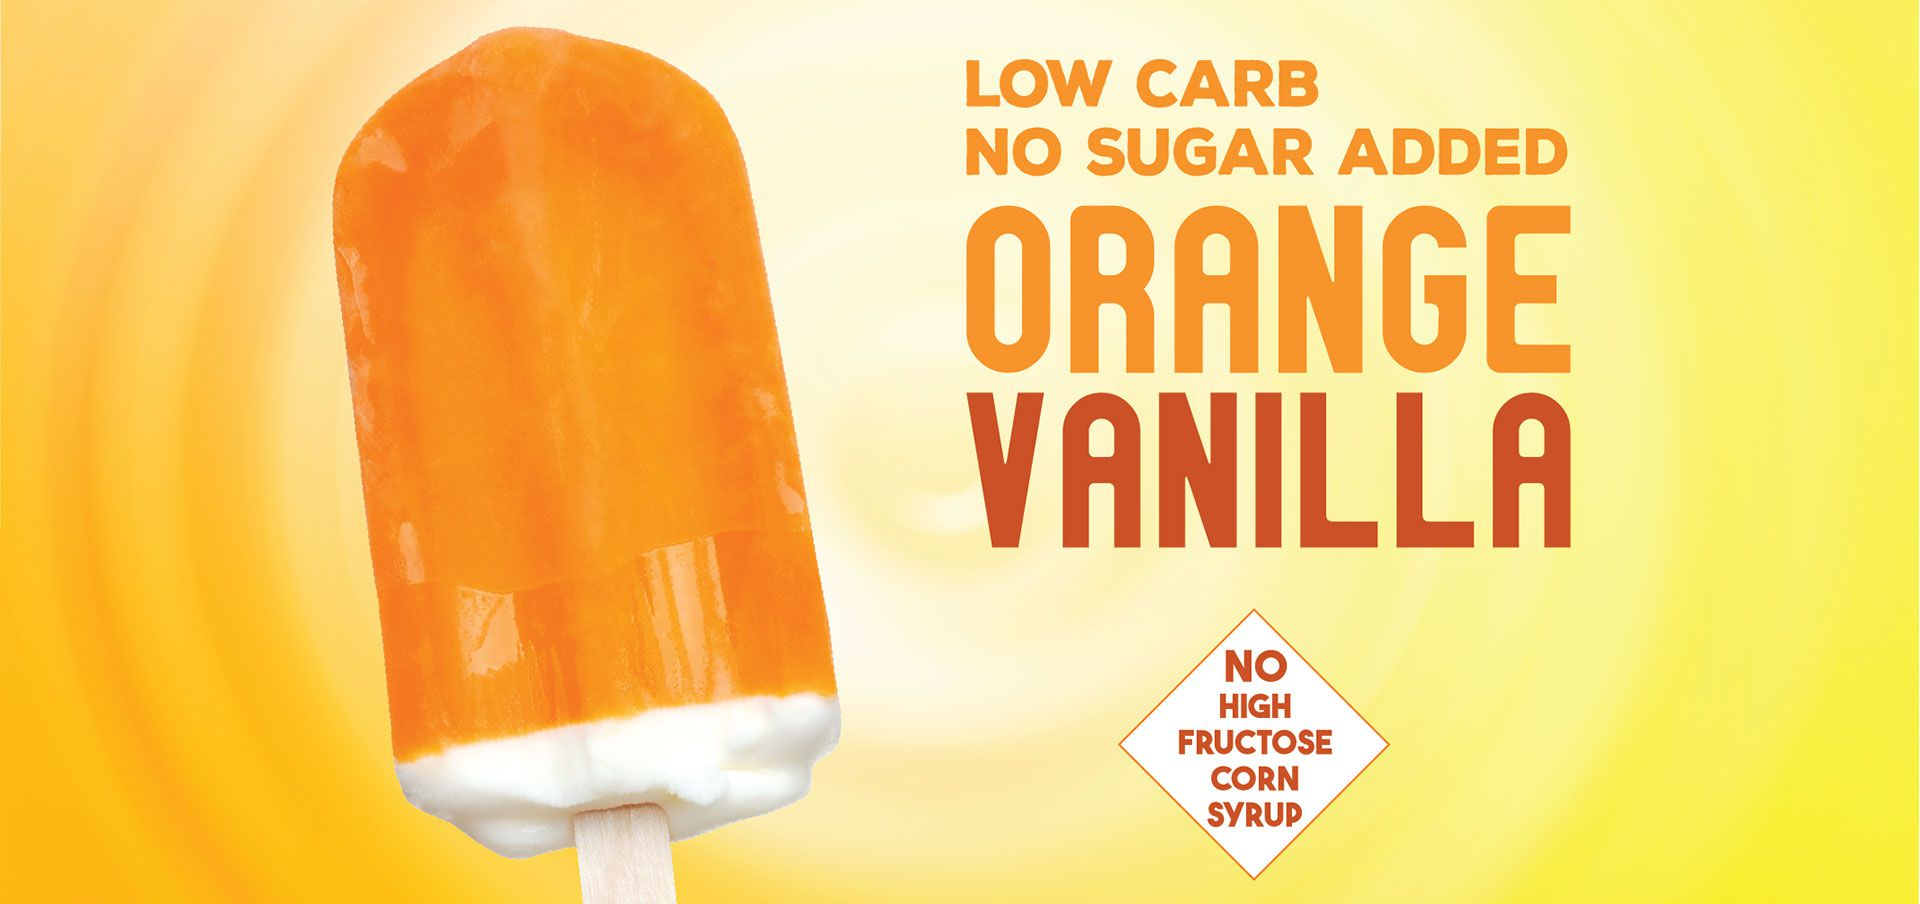 orange vanilla label image